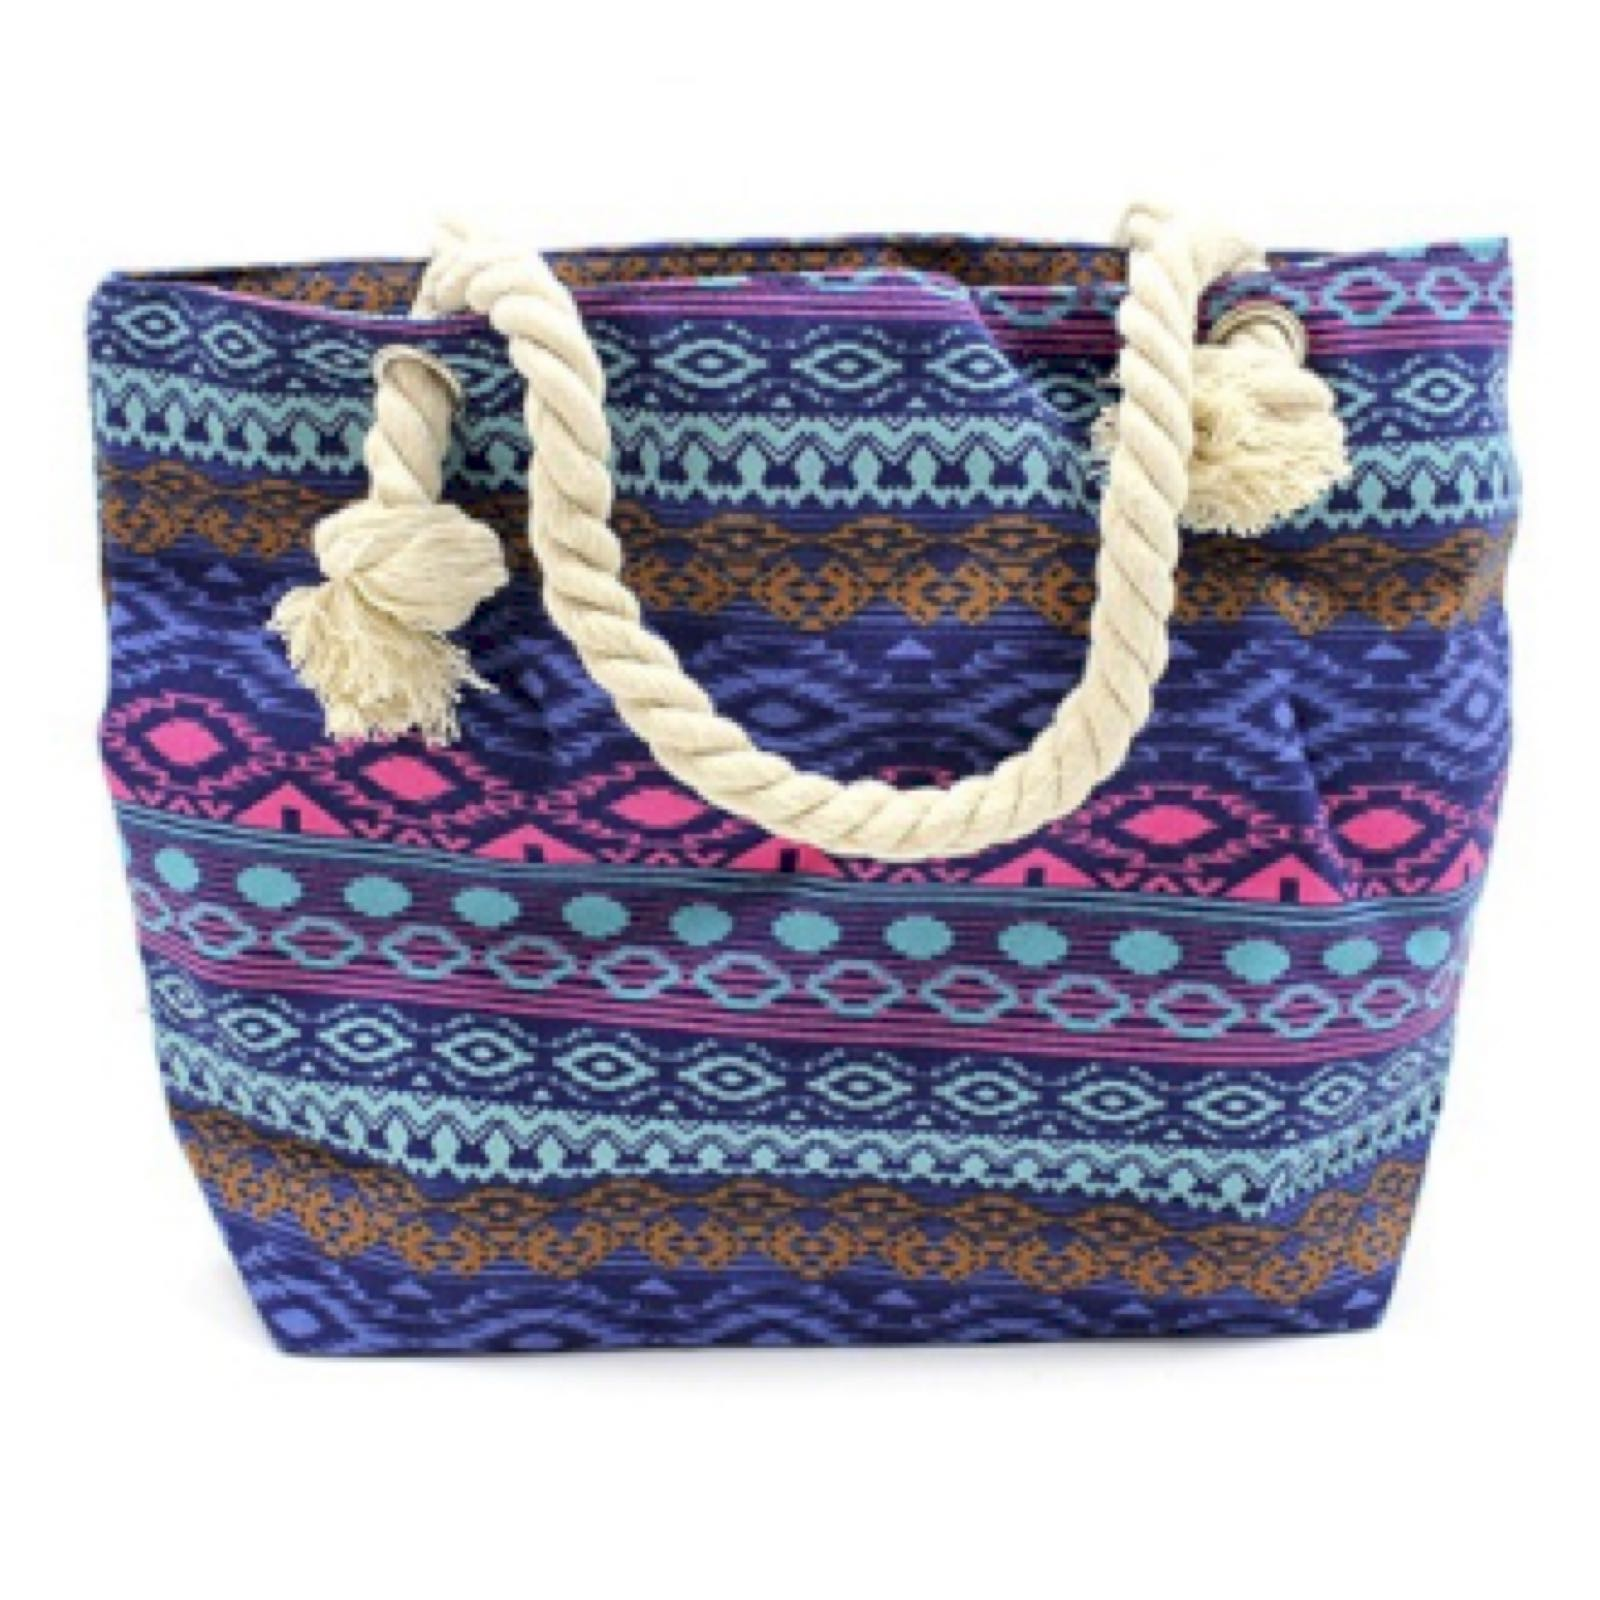 'Bali Blues' Rope Handle Bag